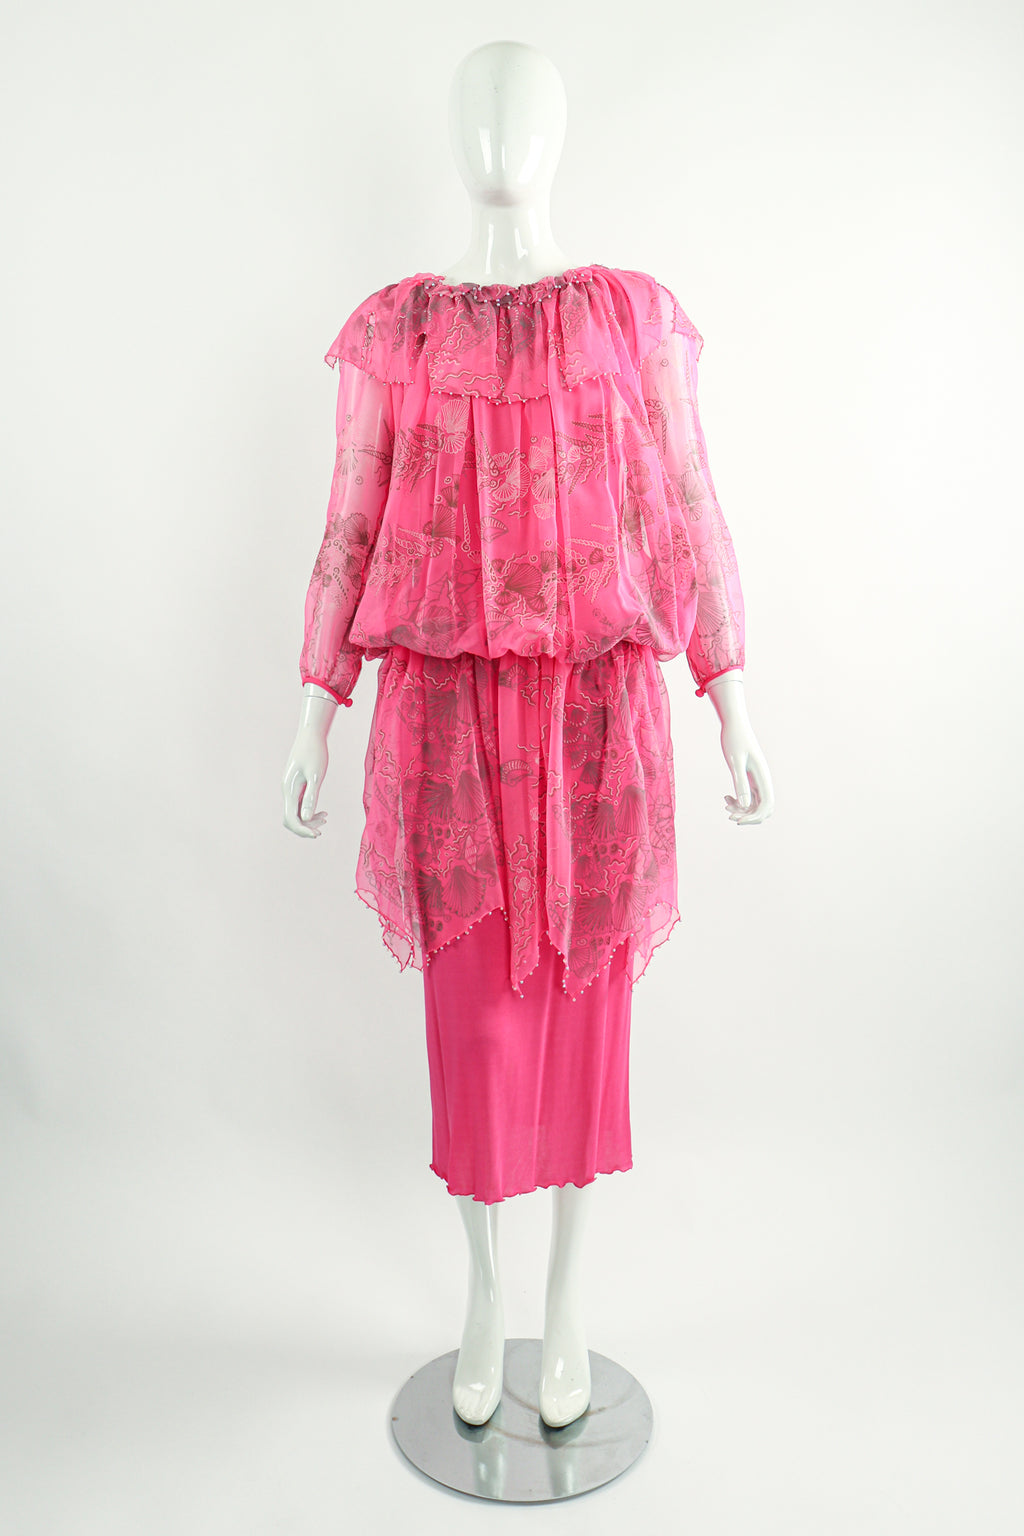 Vintage Zandra Rhodes Painted Seashell Blouson Chiffon Dress on Mannequin Front at Recess LA